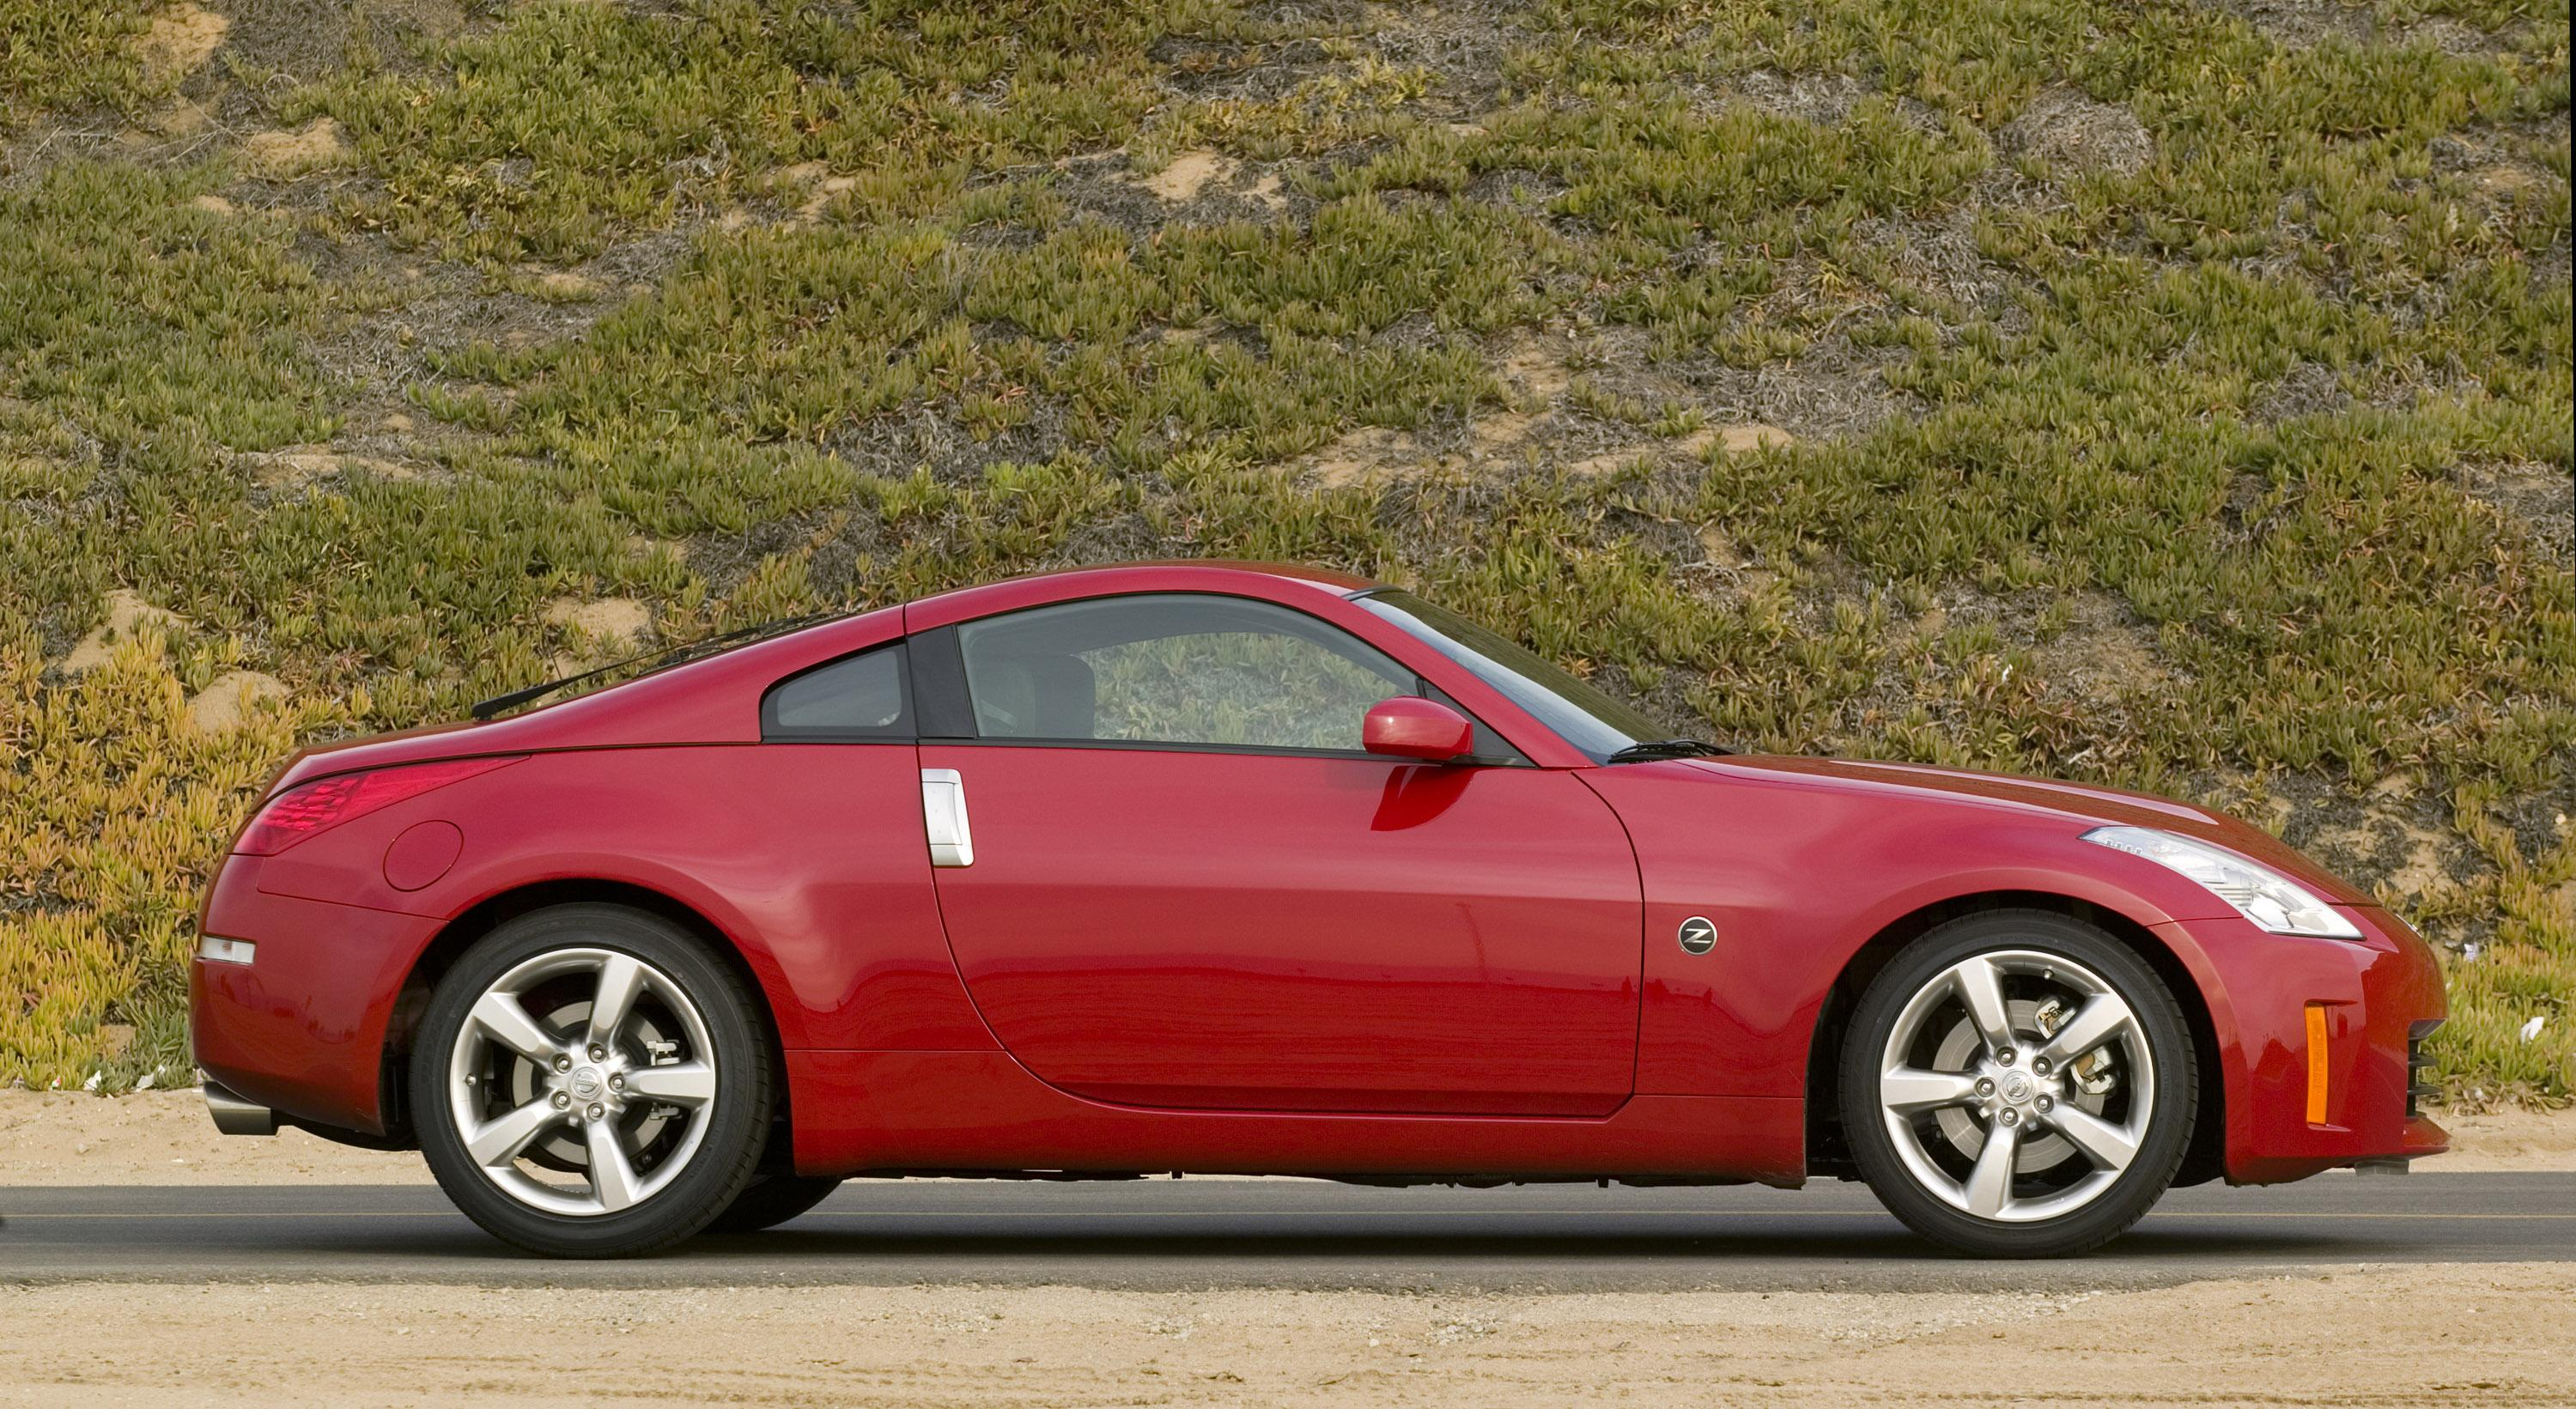 2007 Nissan 350Z Review - Top Speed